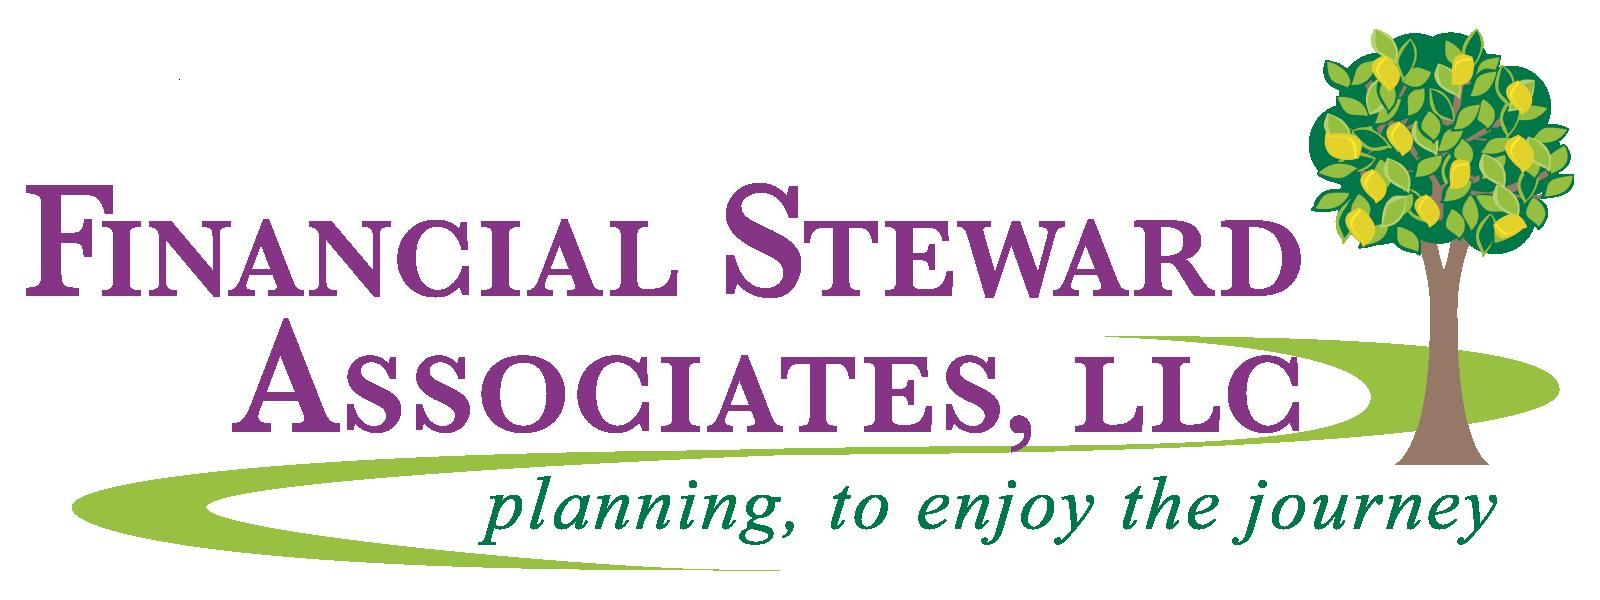 Financial Steward Associates